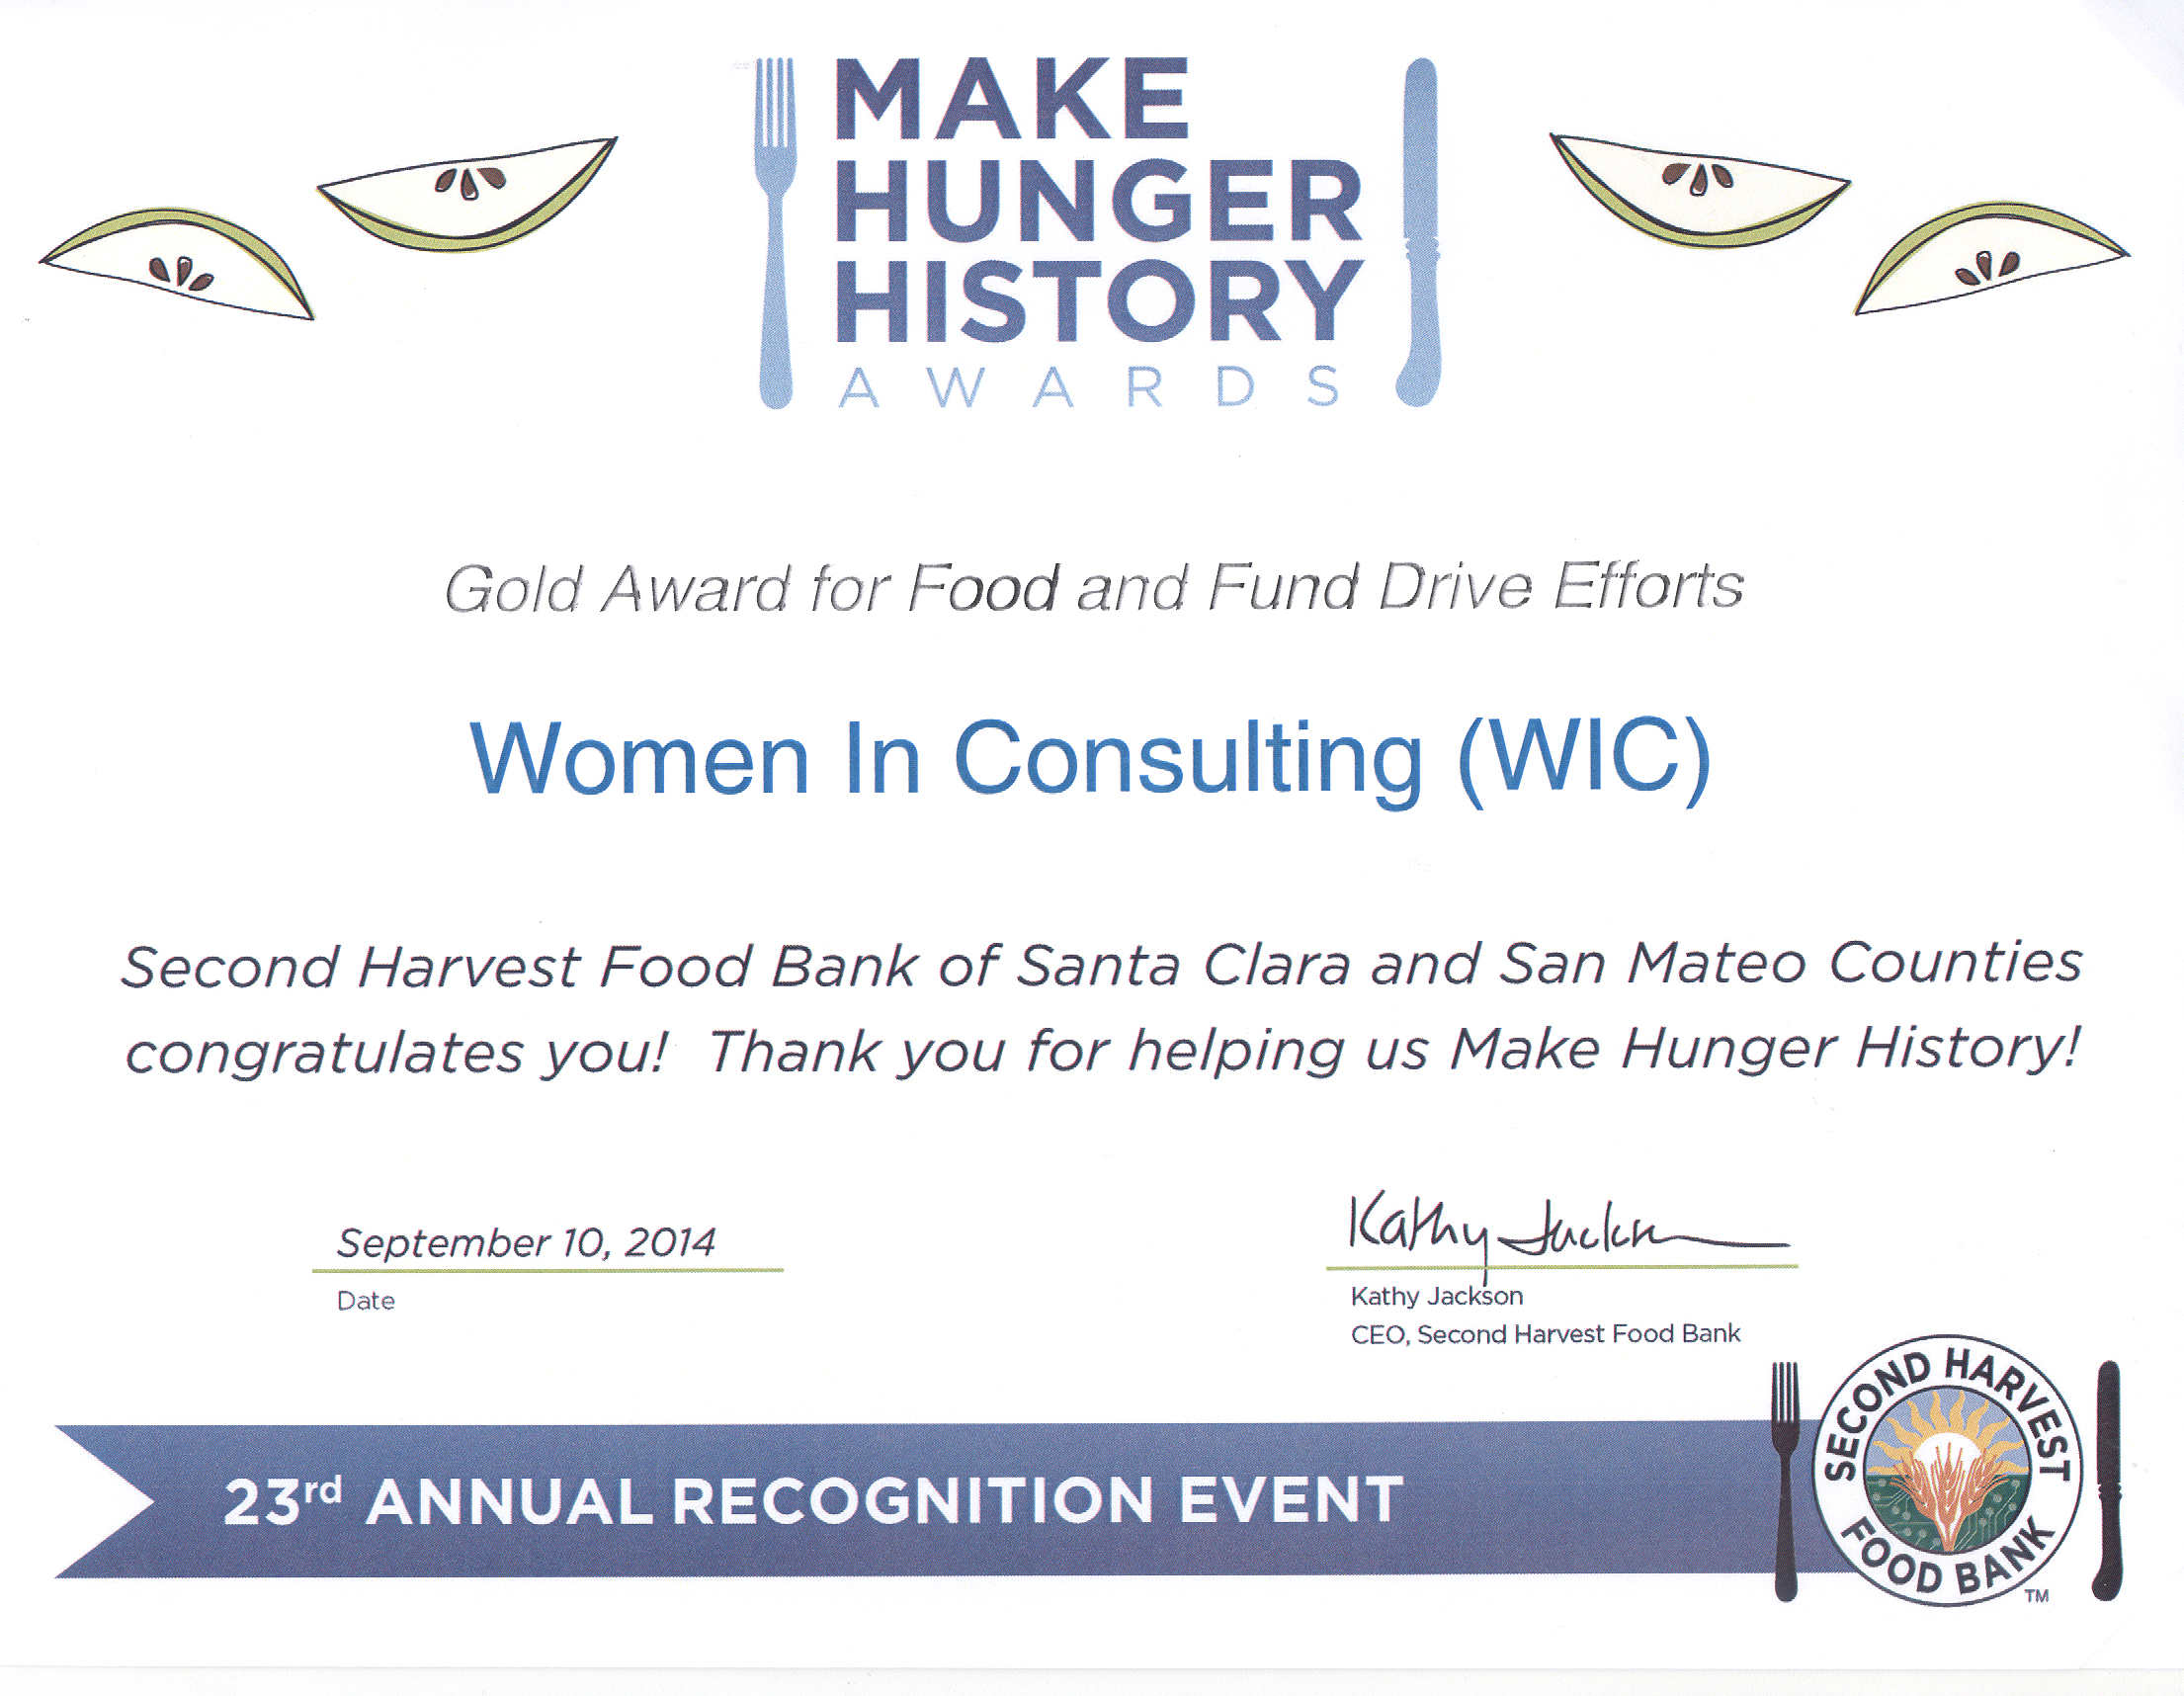 Second Harvest Food Bank 2014 Award